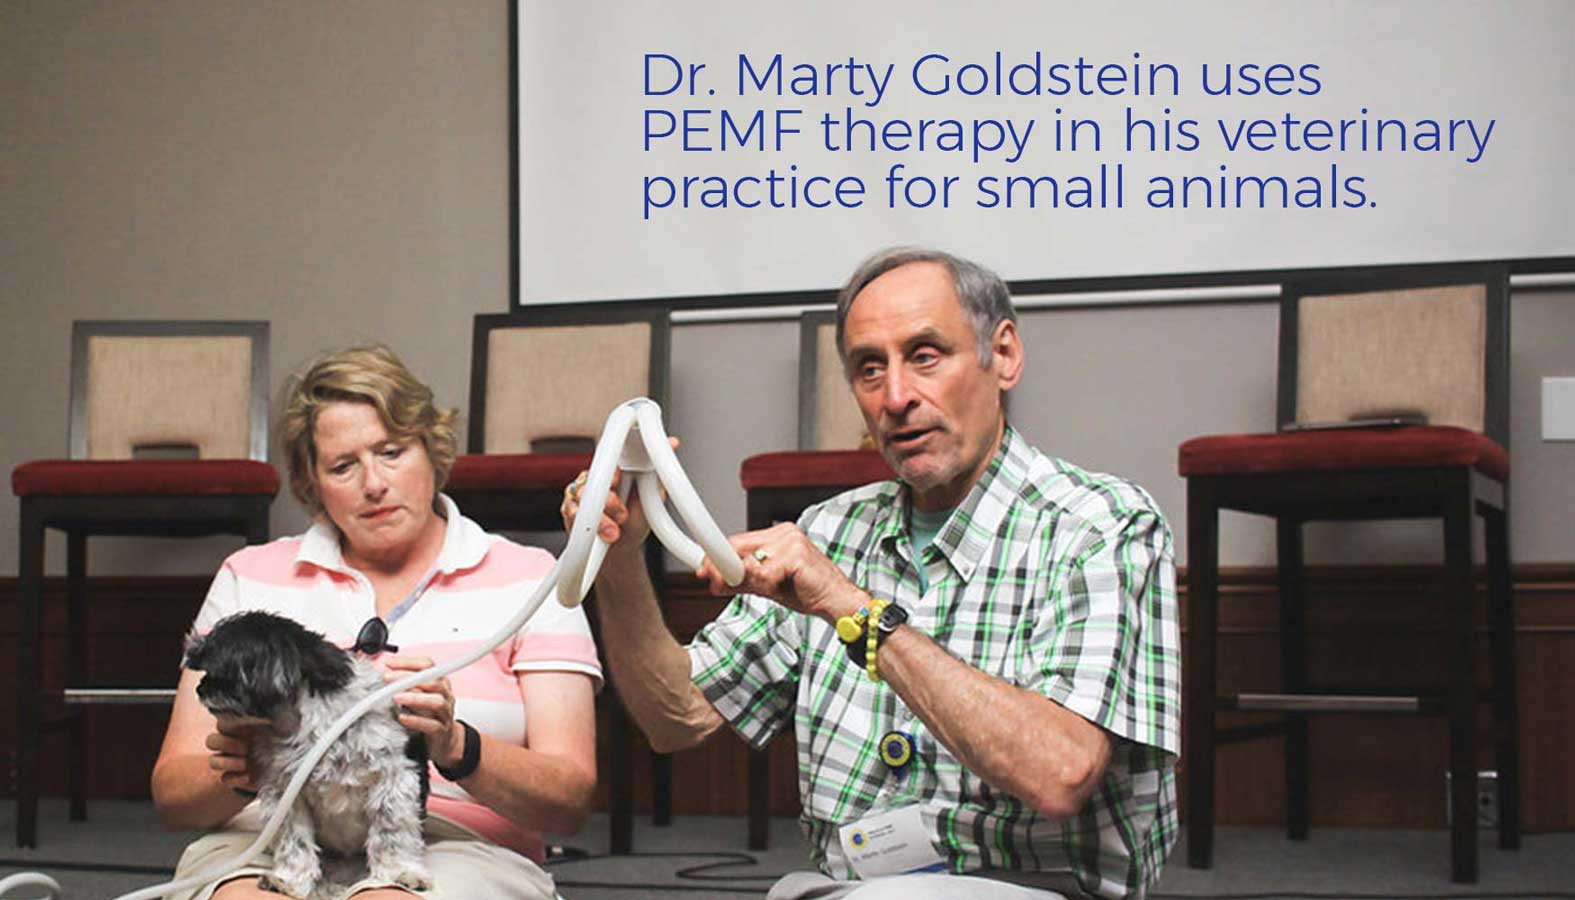 Dr. Marty Goldstein uses PEMF therapy in his veterinary practice for small animals.